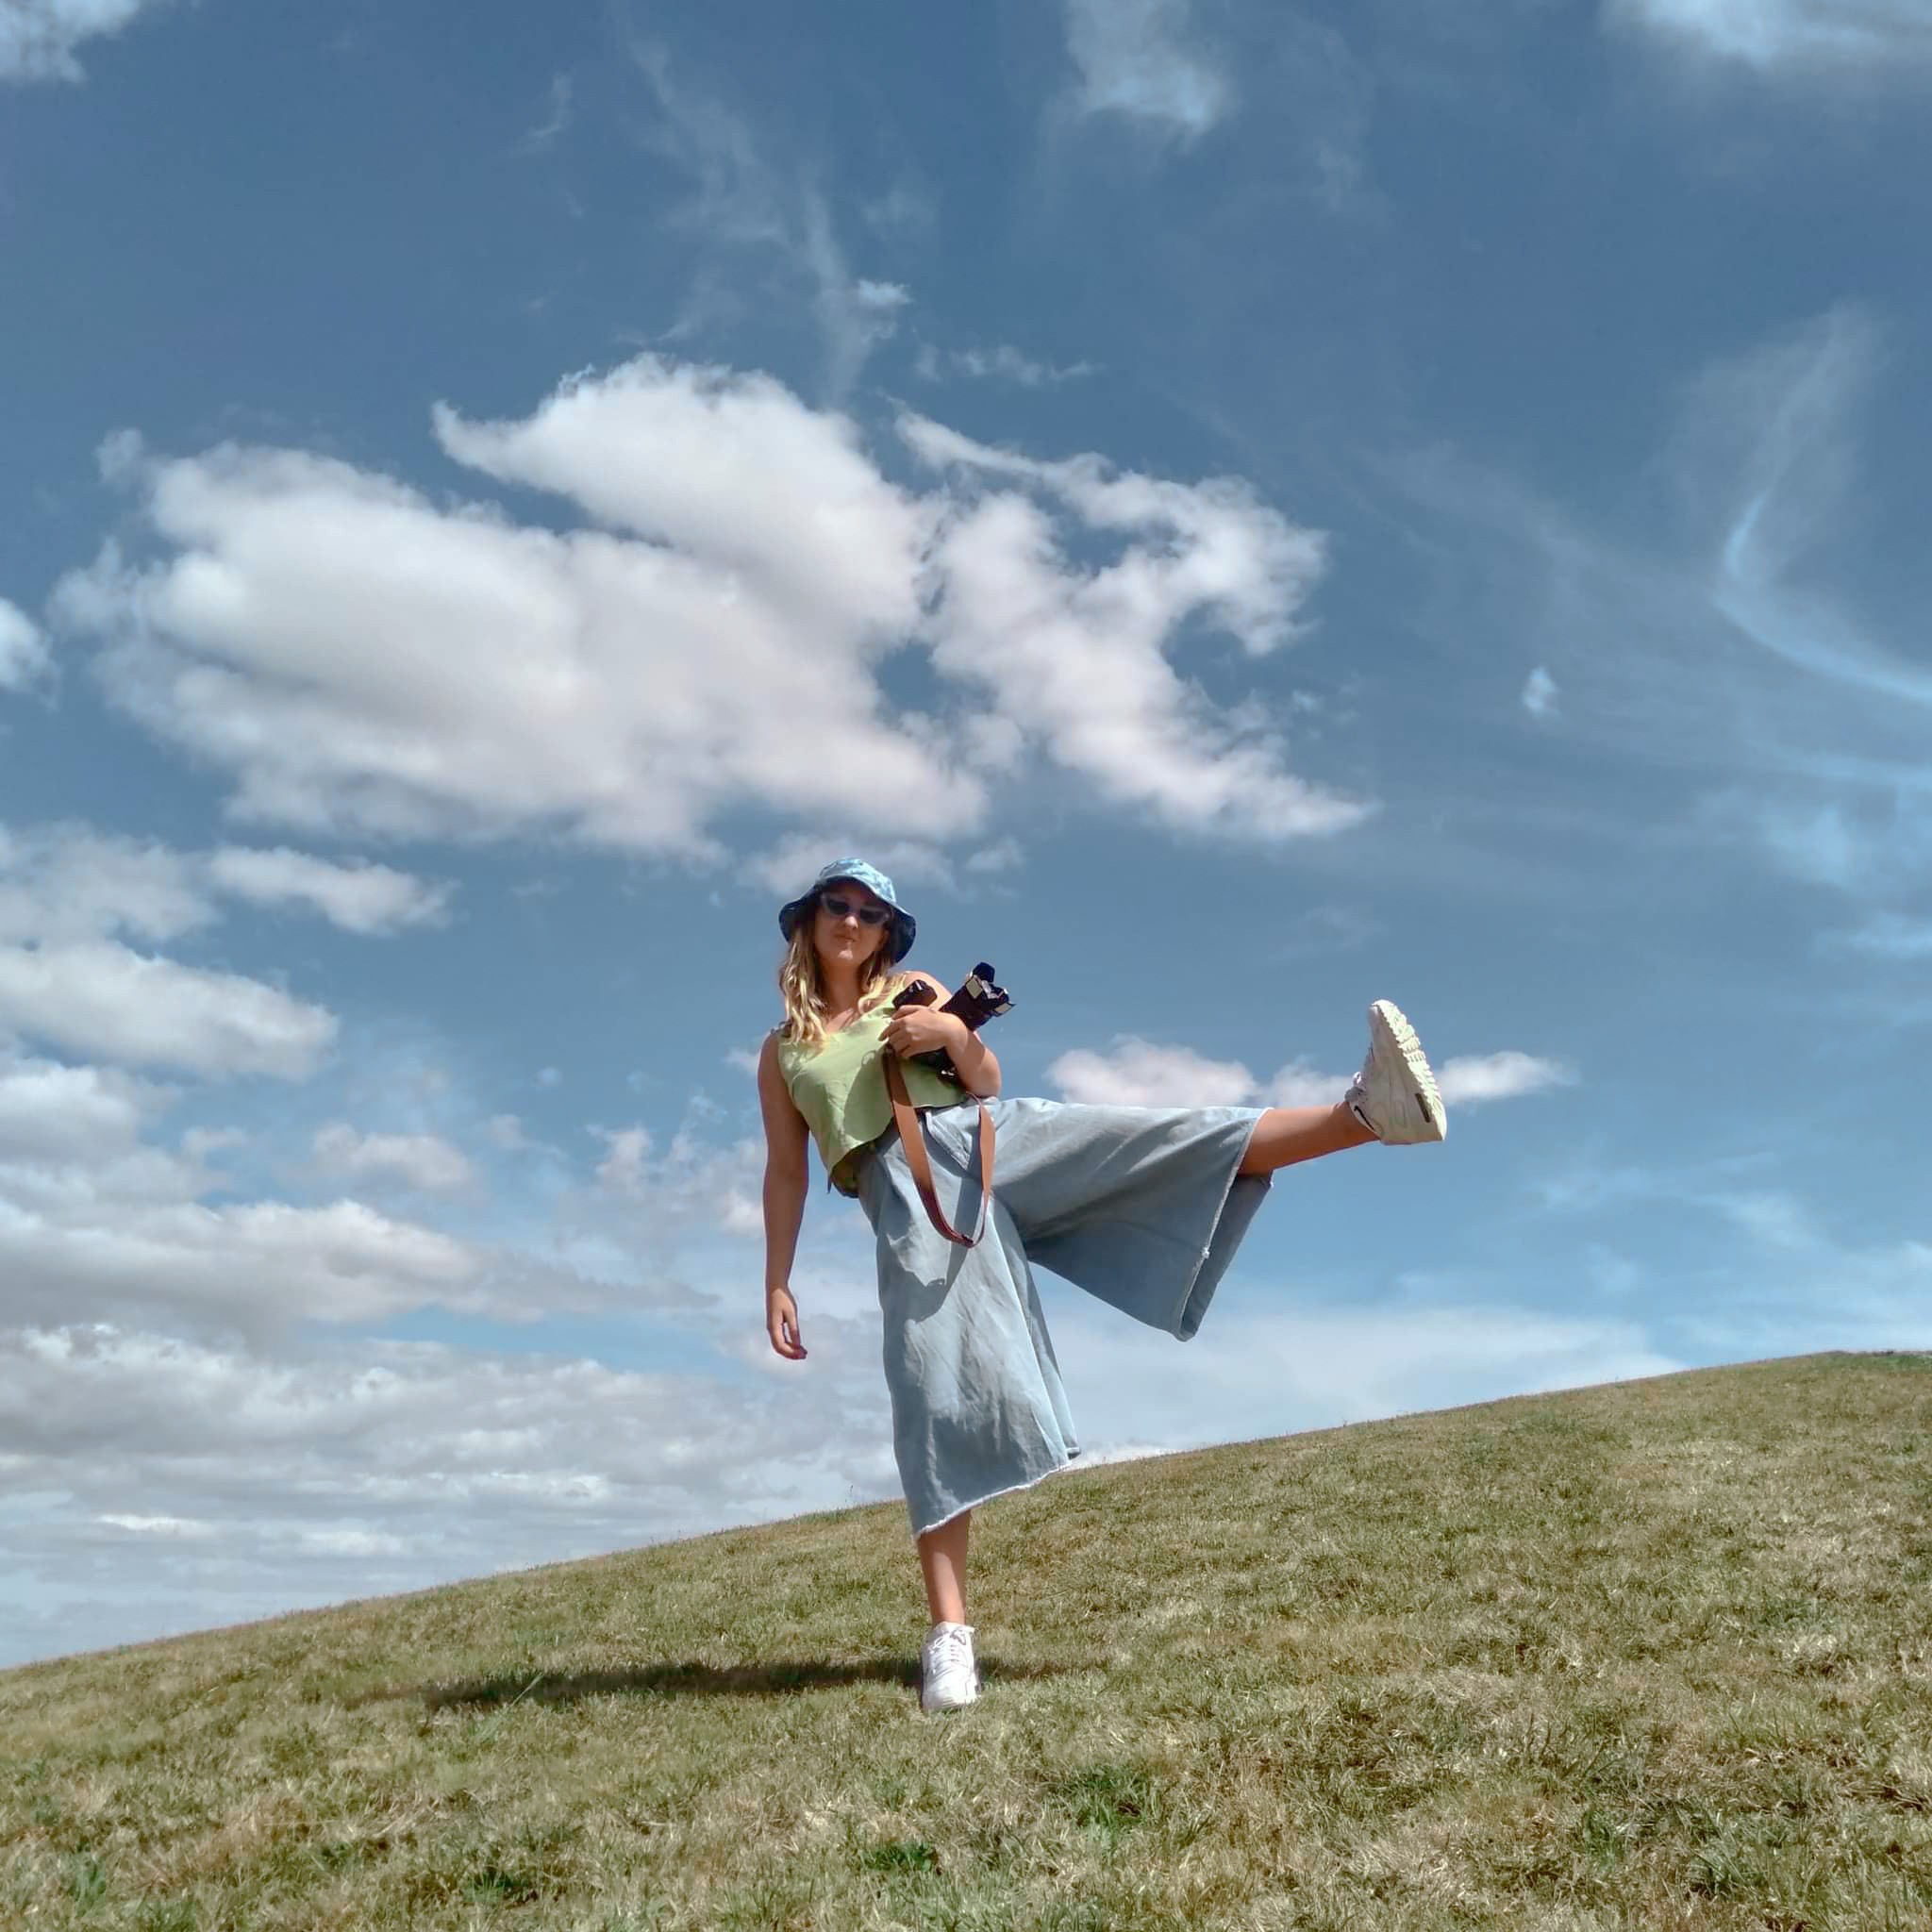 Beka on a green hill with blue sky at the back, standing on one foot with a camera in her hands